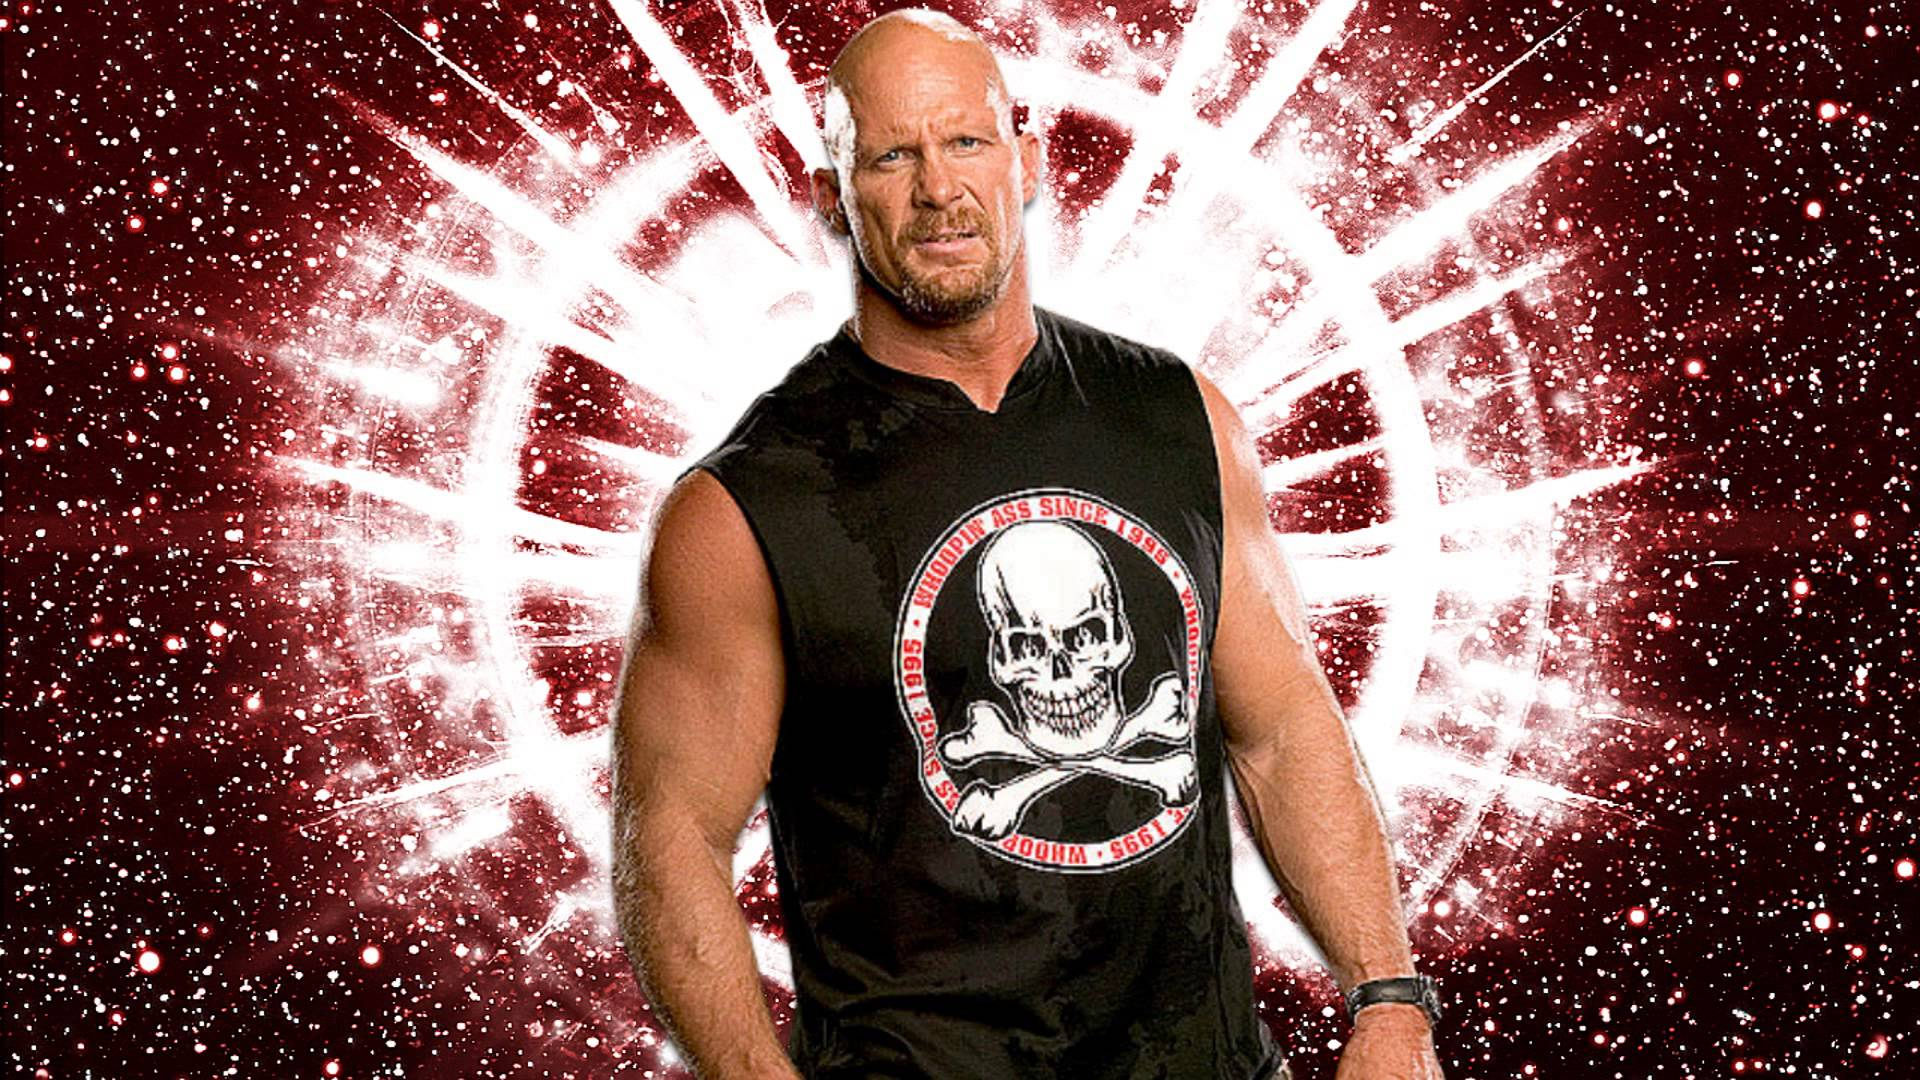 1996-1998: Stone Cold Steve Austin 3rd WWE Theme Song - Hell Frozen Over [ᵀᴱᴼ + ᴴᴰ] - YouTube